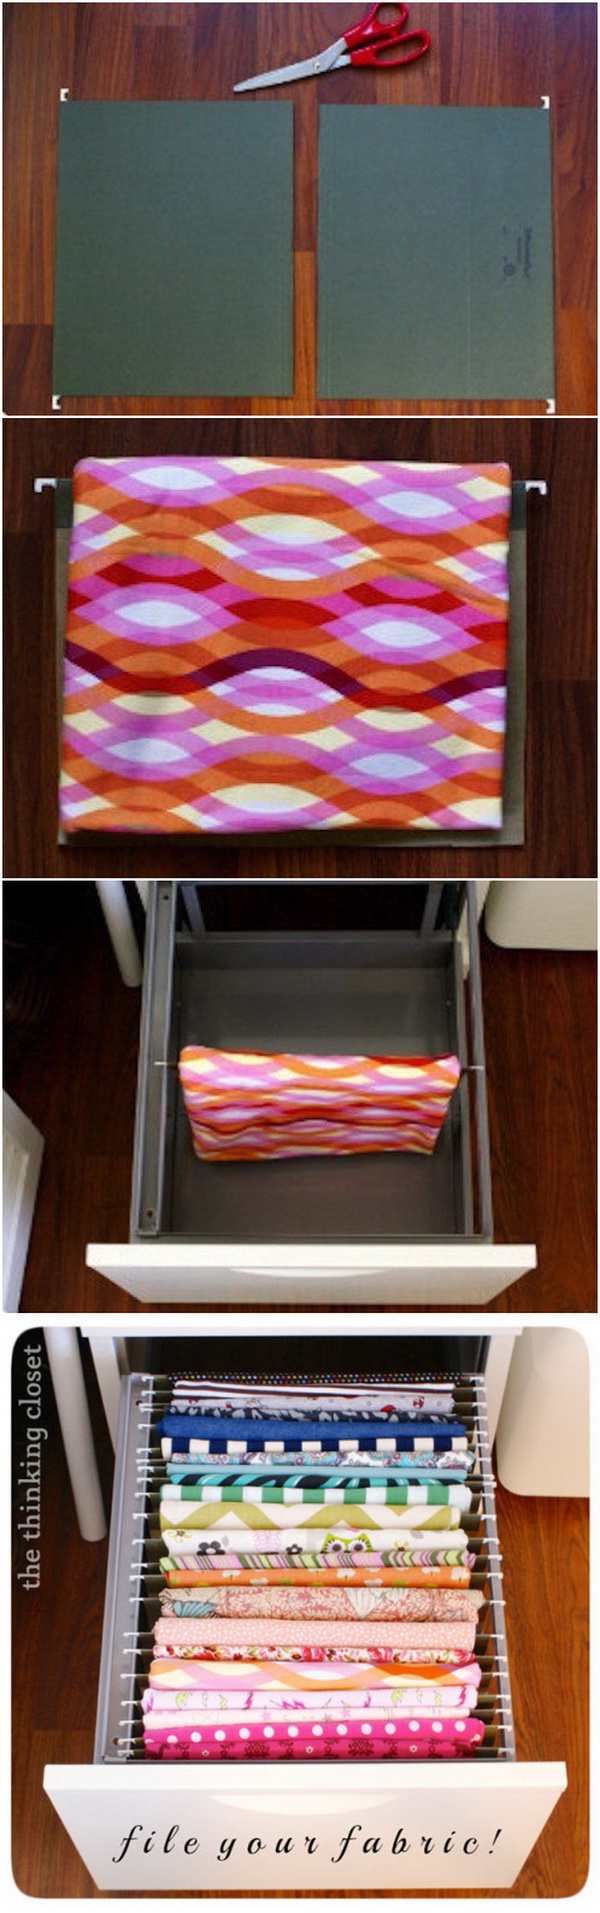 Filing Fabric Organizer. Use a file cabinet and hanging file folders to store and organize fabric!